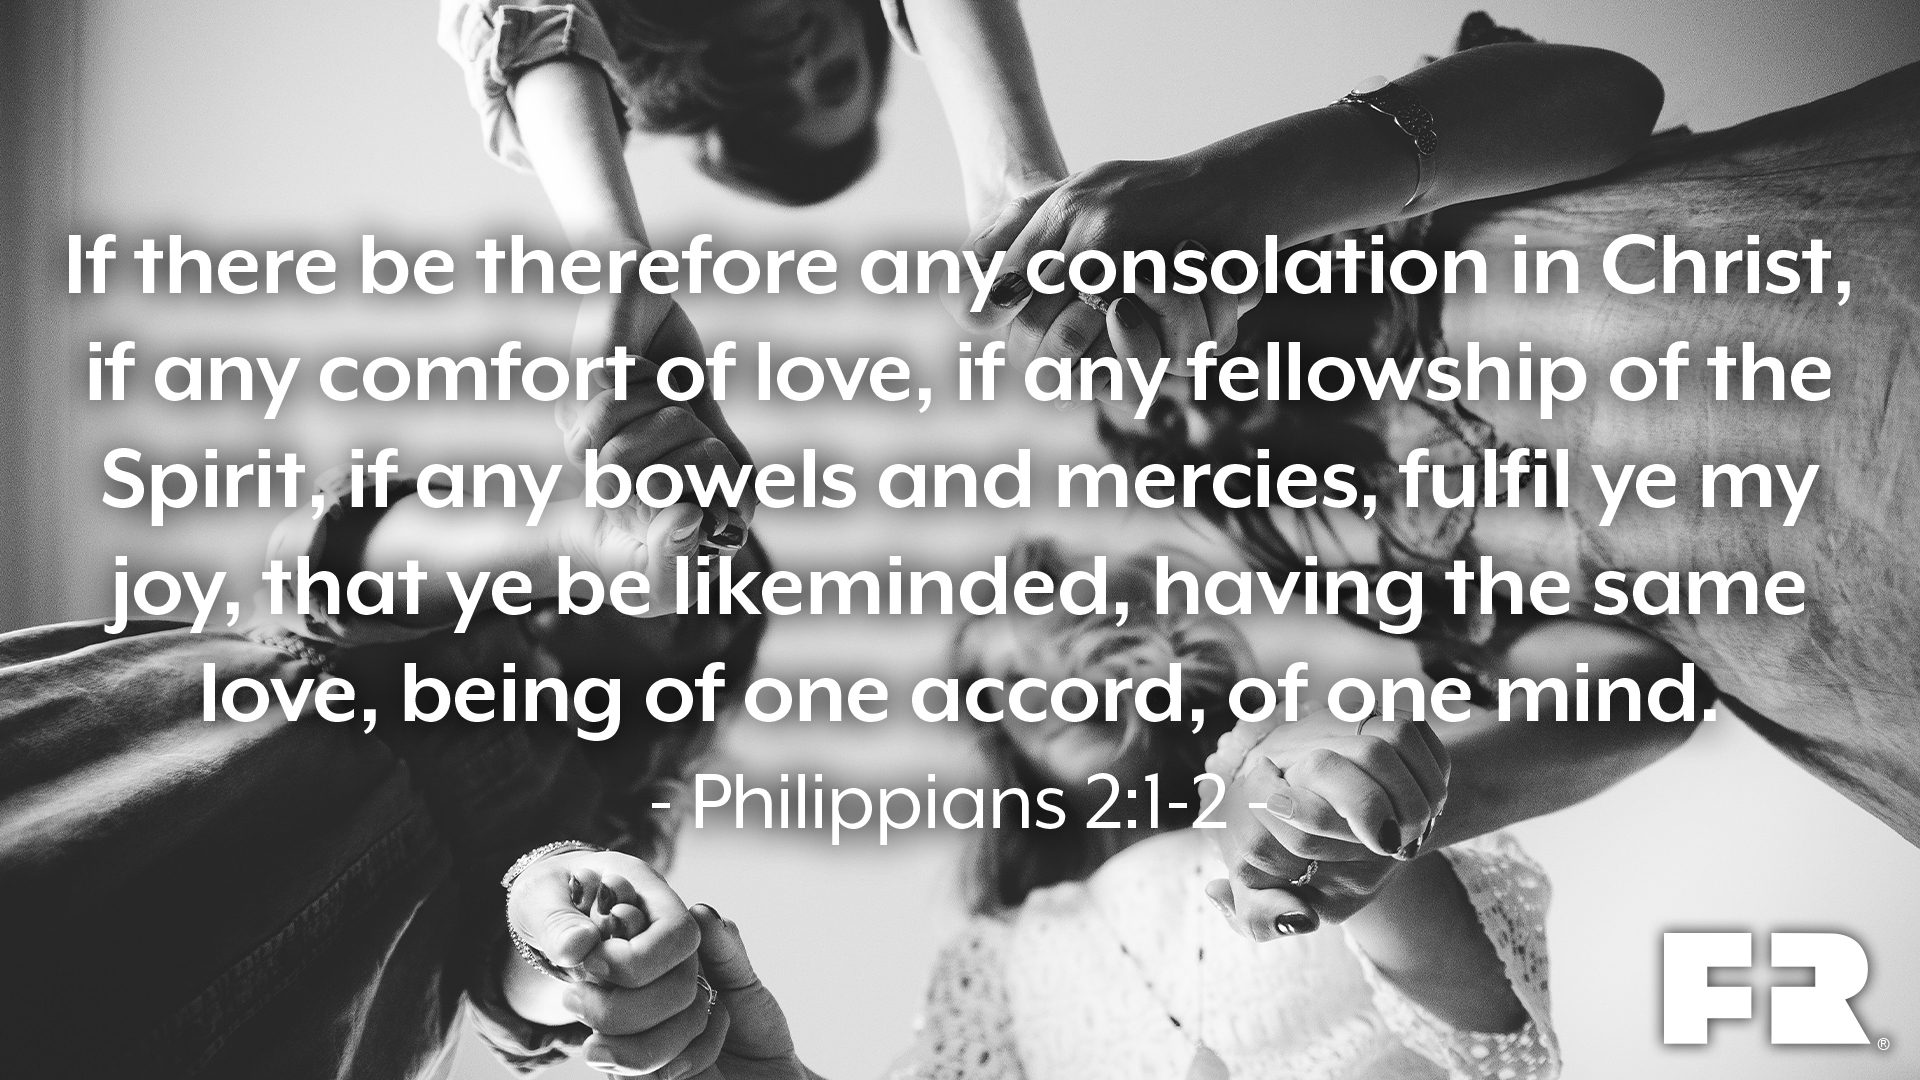 """If there be therefore any consolation in Christ, if any comfort of love, if any fellowship of the Spirit, if any bowels and mercies, fulfil ye my joy, that ye be likeminded, having the same love, being of one accord, of one mind."""